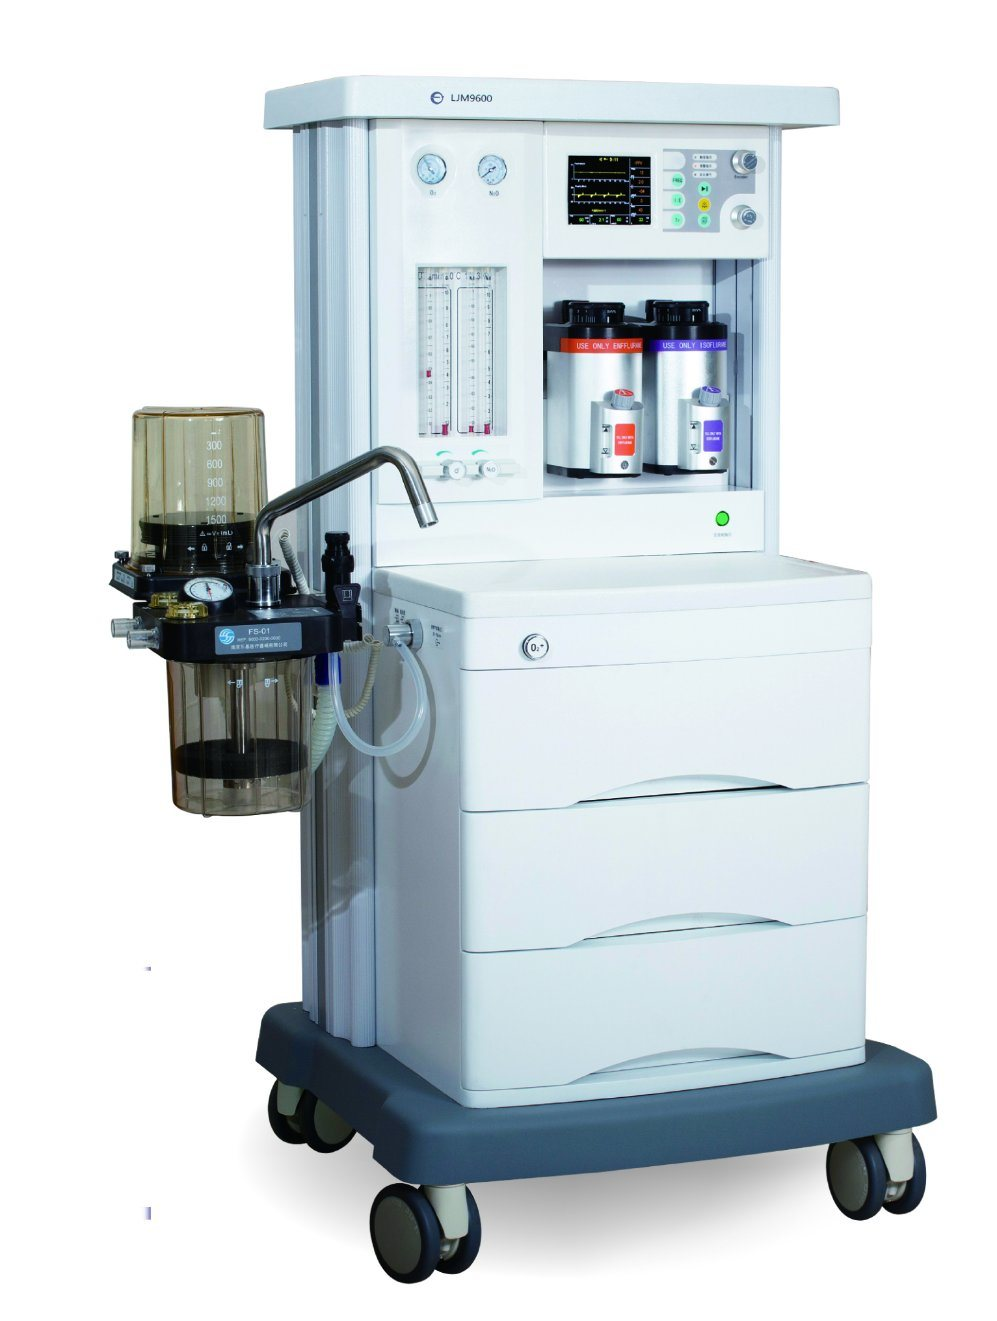 General Medical Anaesthesia/Anesthesia Machine Ljm 9600 with Ce Certificate